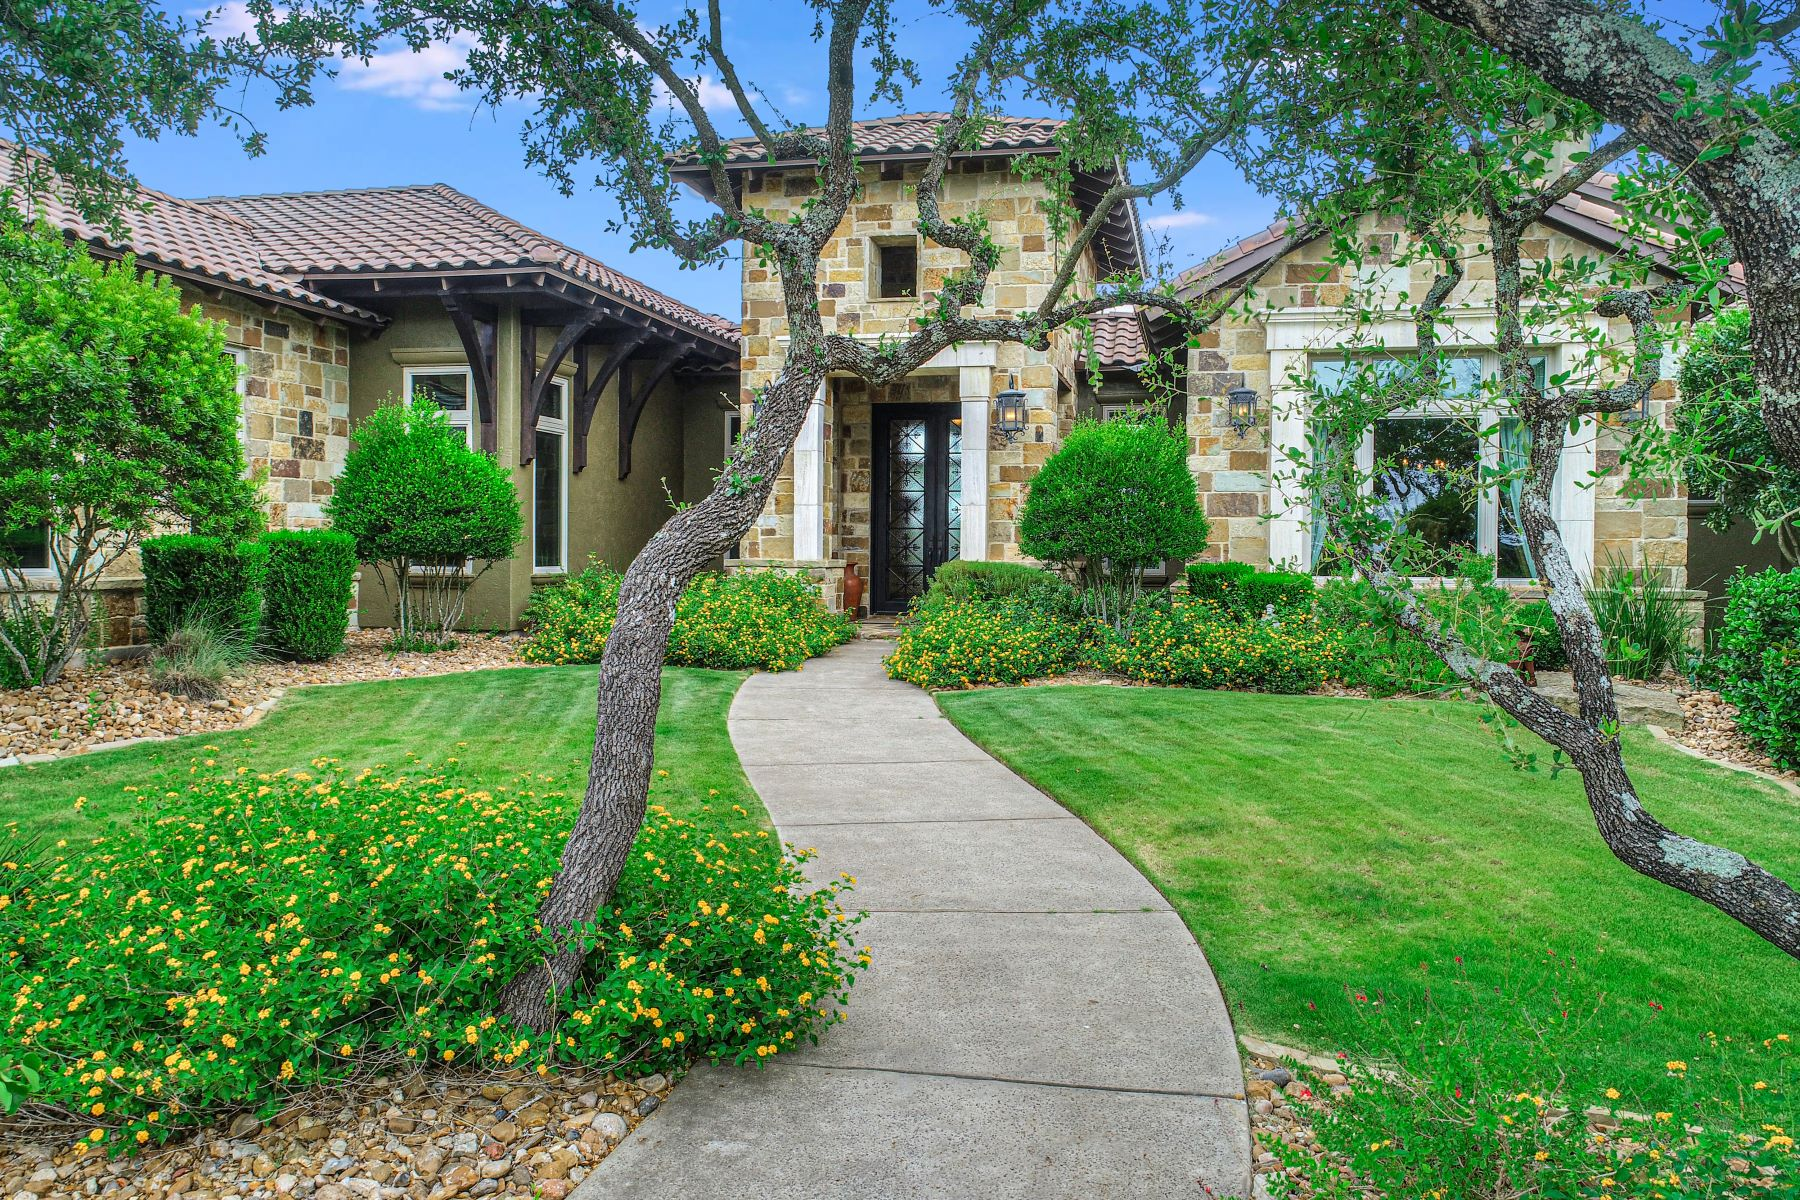 Single Family Homes for Sale at Meticulously Built Hilltop Estate With Panoramic Views 43 Thunder Hill Boerne, Texas 78006 United States